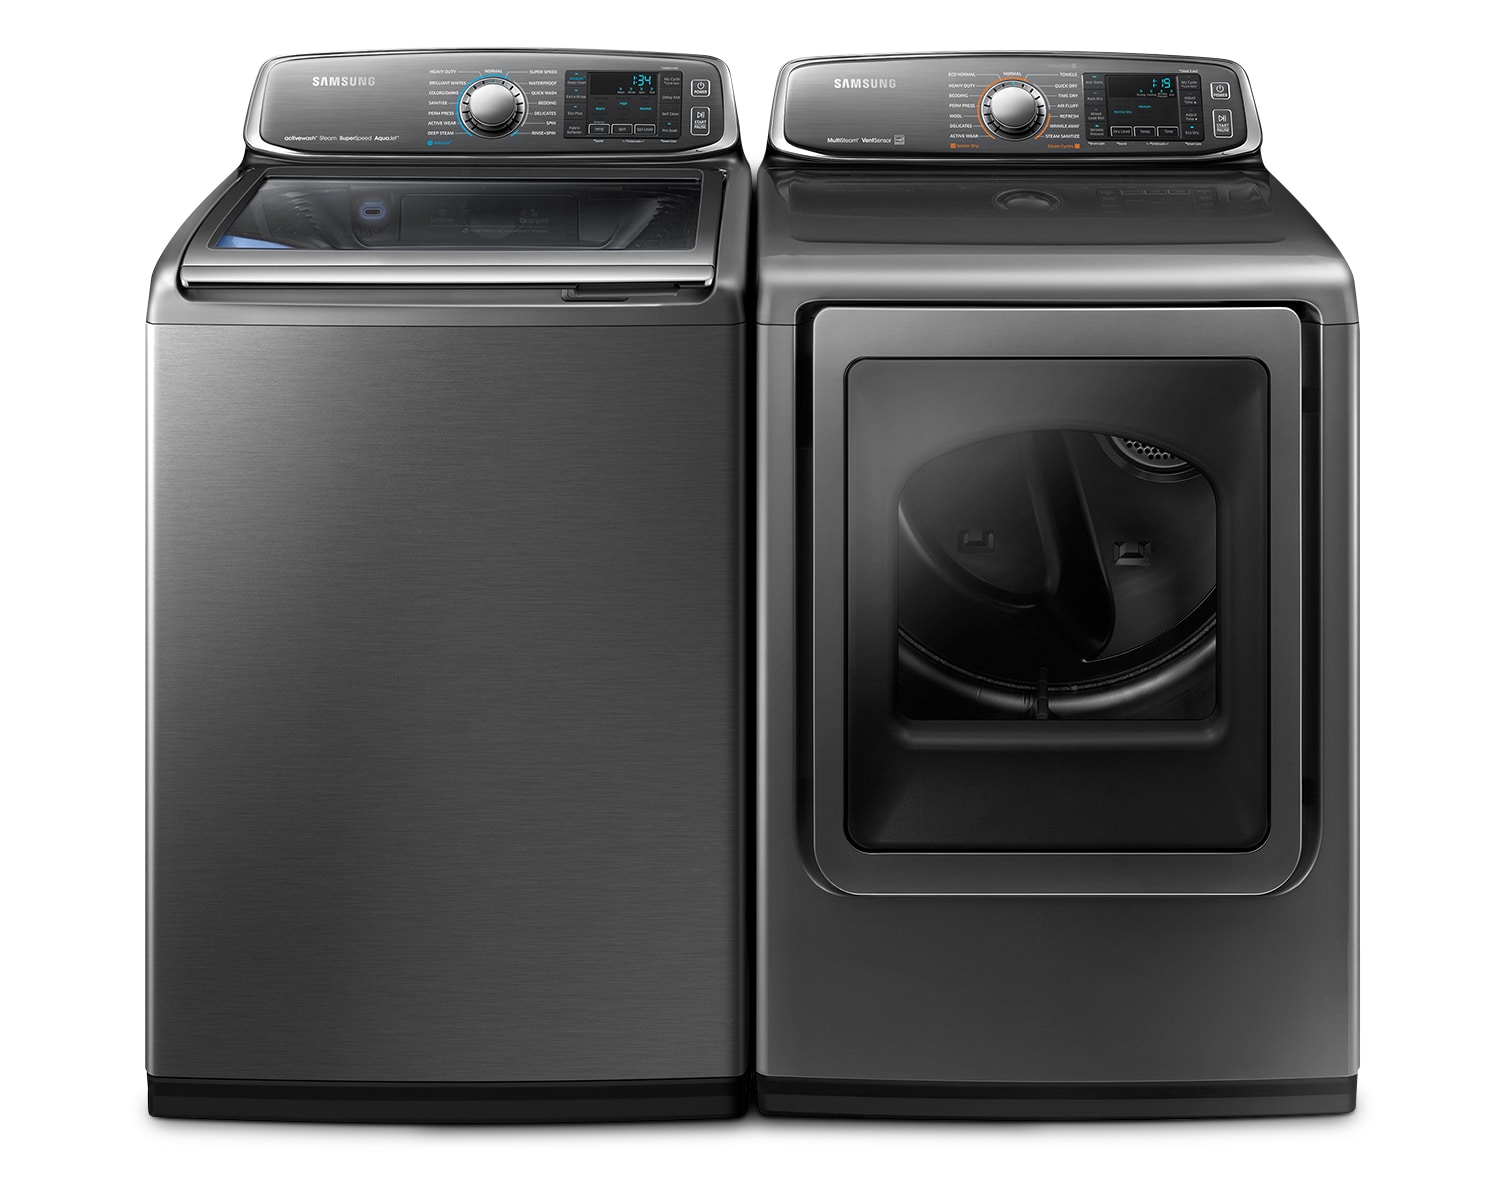 Samsung Platinum Washer/Dryer Collection - WA52J8700AP/DV52J8700EP